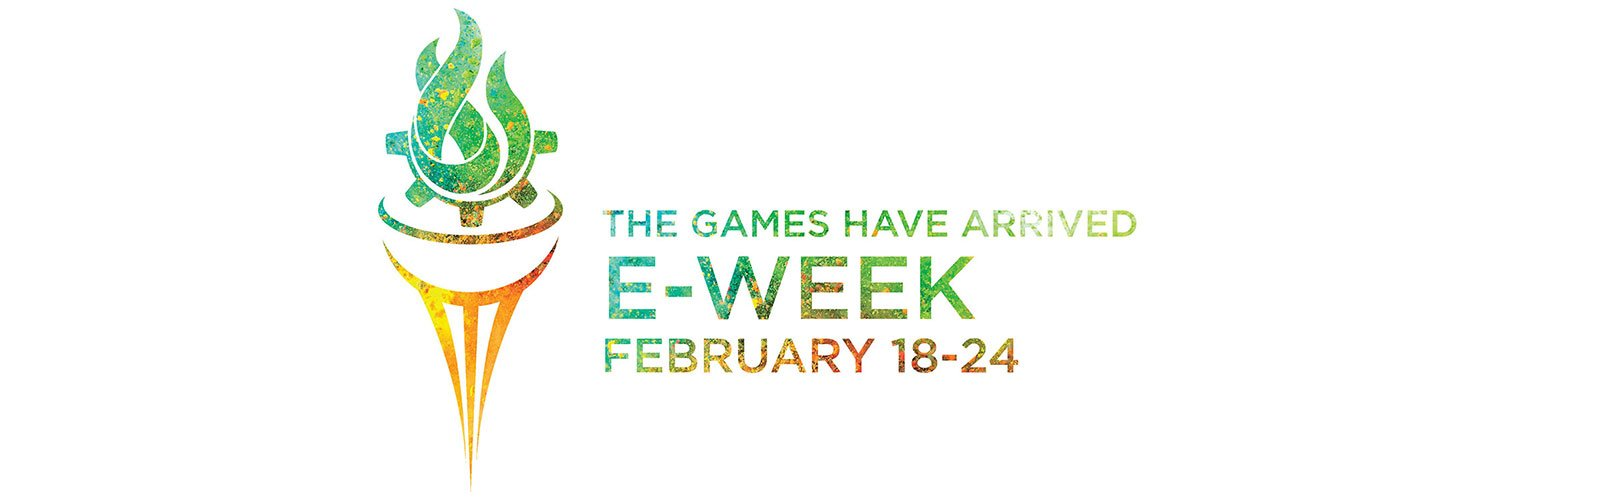 The Games have arrived, E-Week, February 18-24, 2018